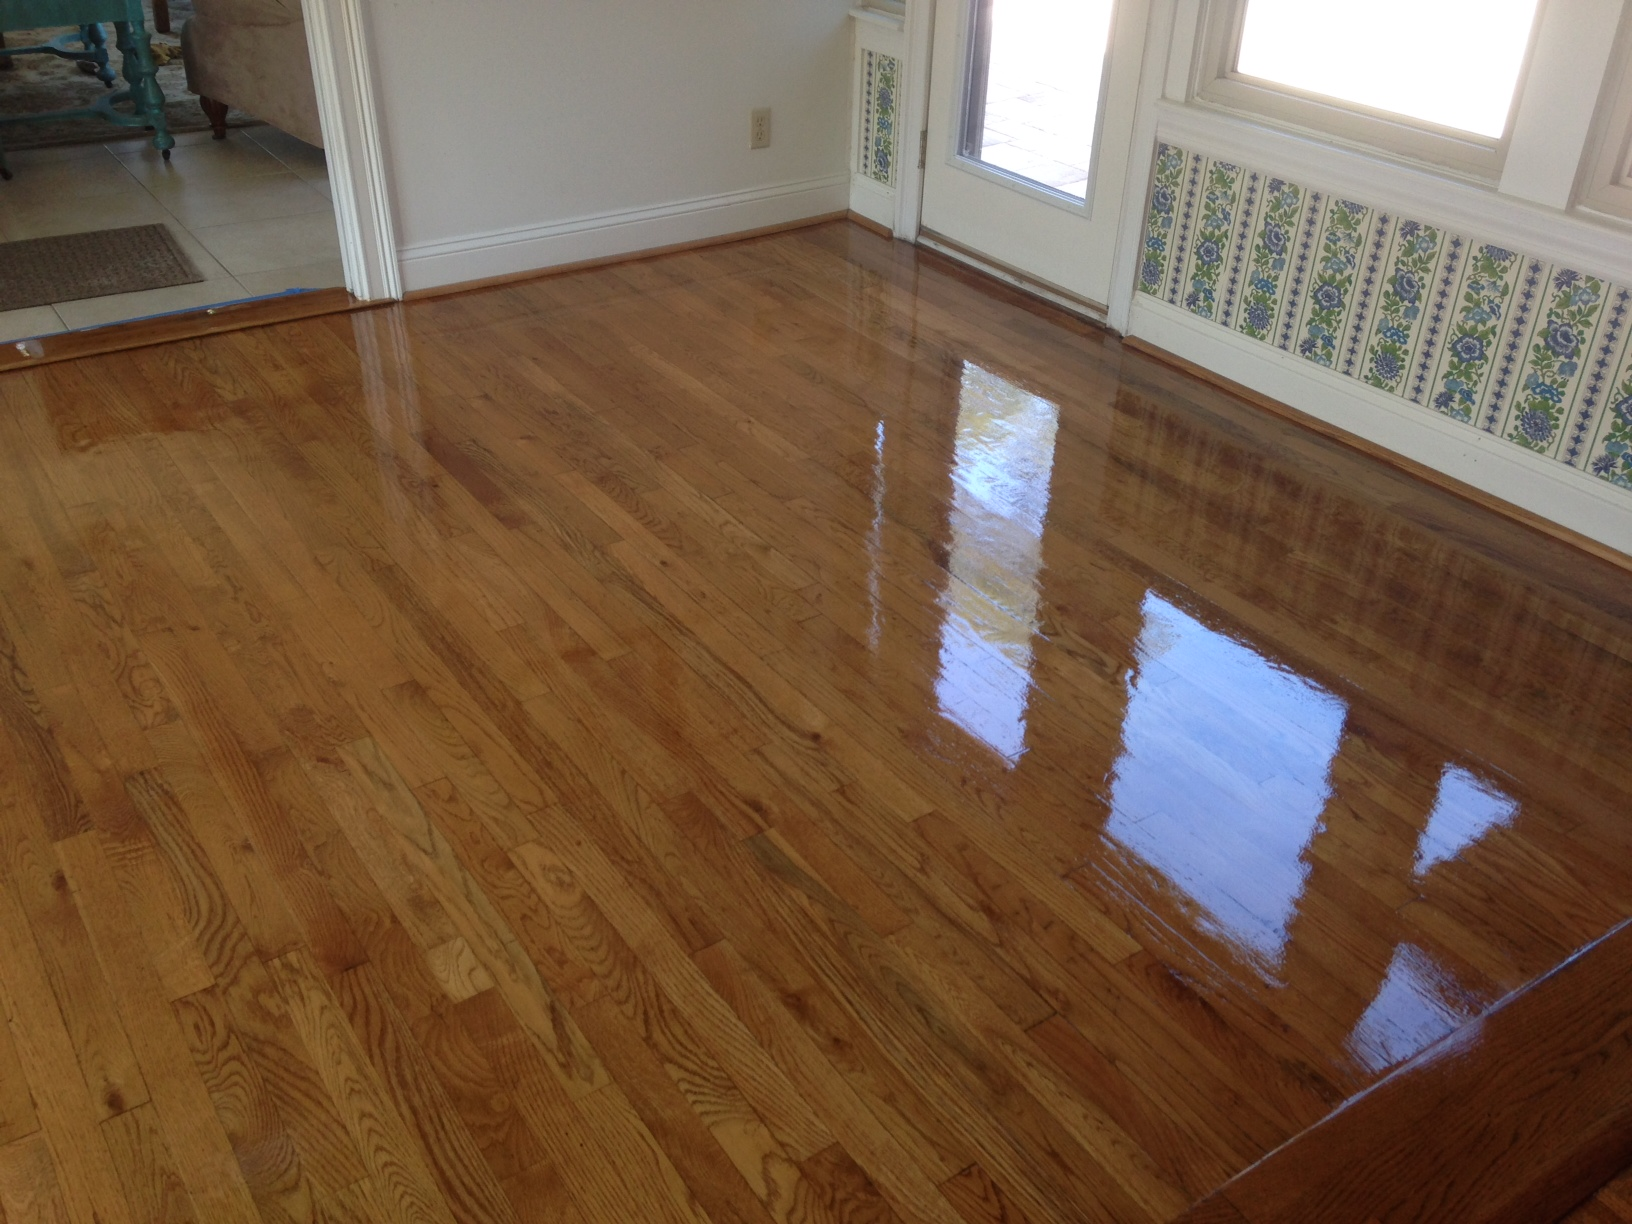 woods kd home floor company wood american inspired njk reclaimed flooring